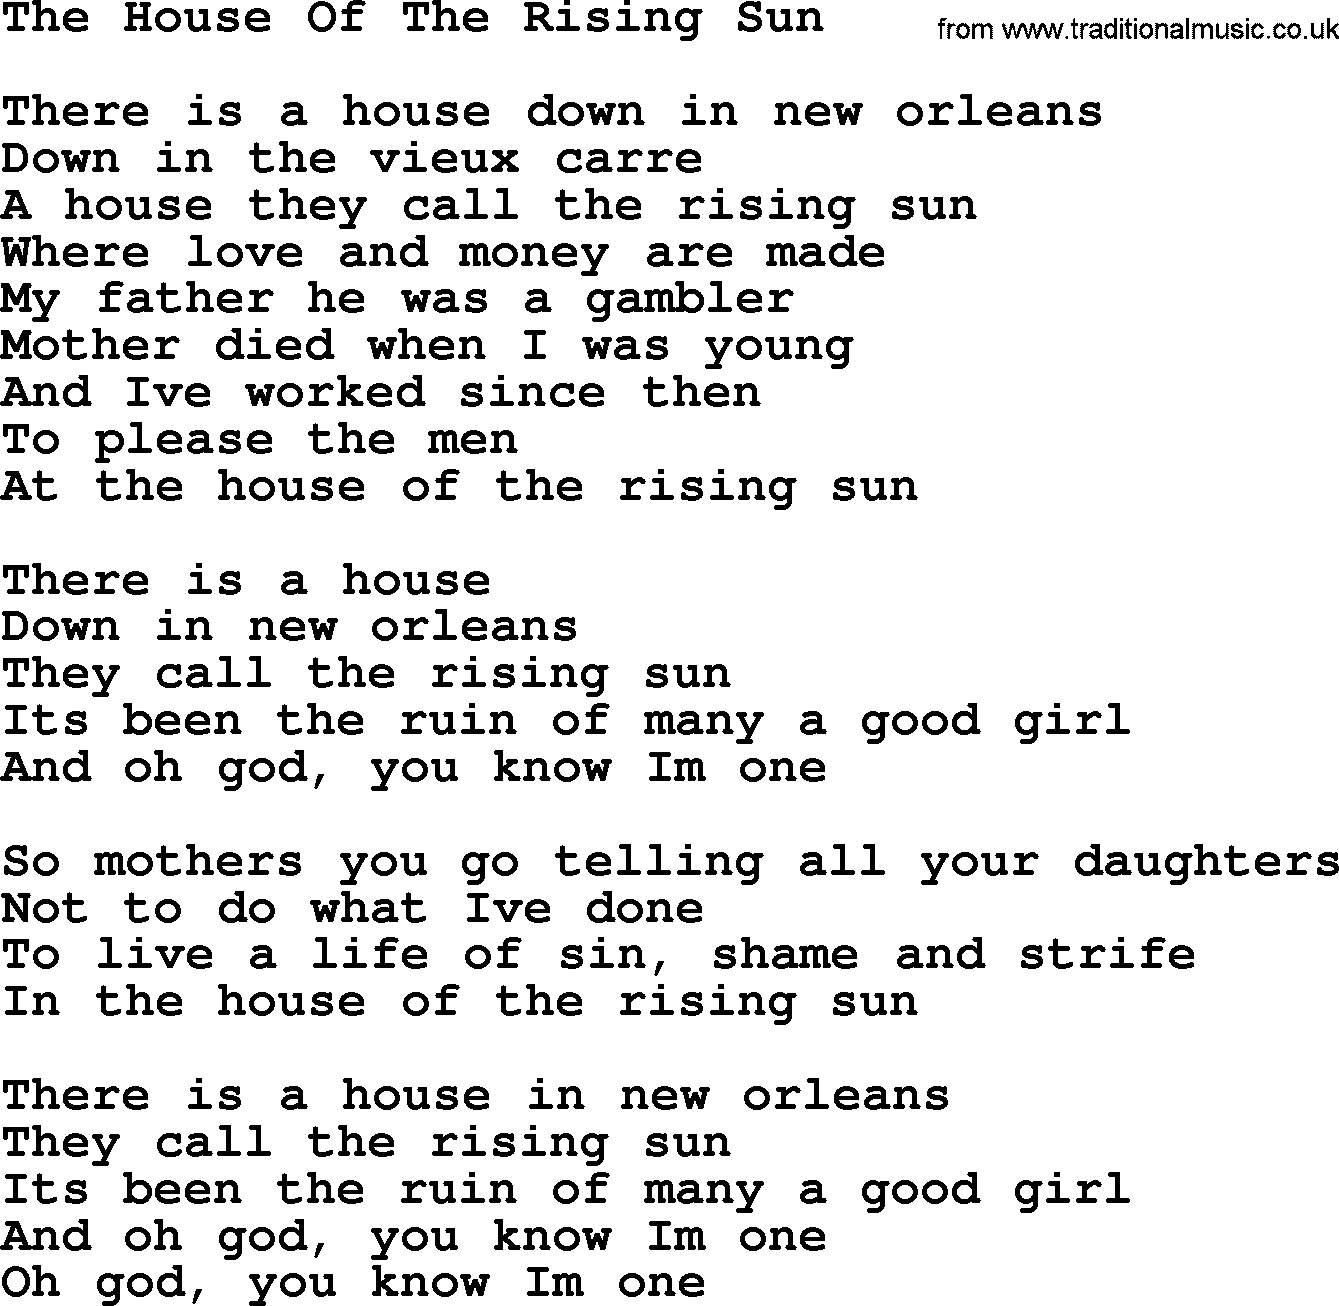 House Of The Rising Sun Chords Dolly Parton Song The House Of The Rising Sun Lyrics